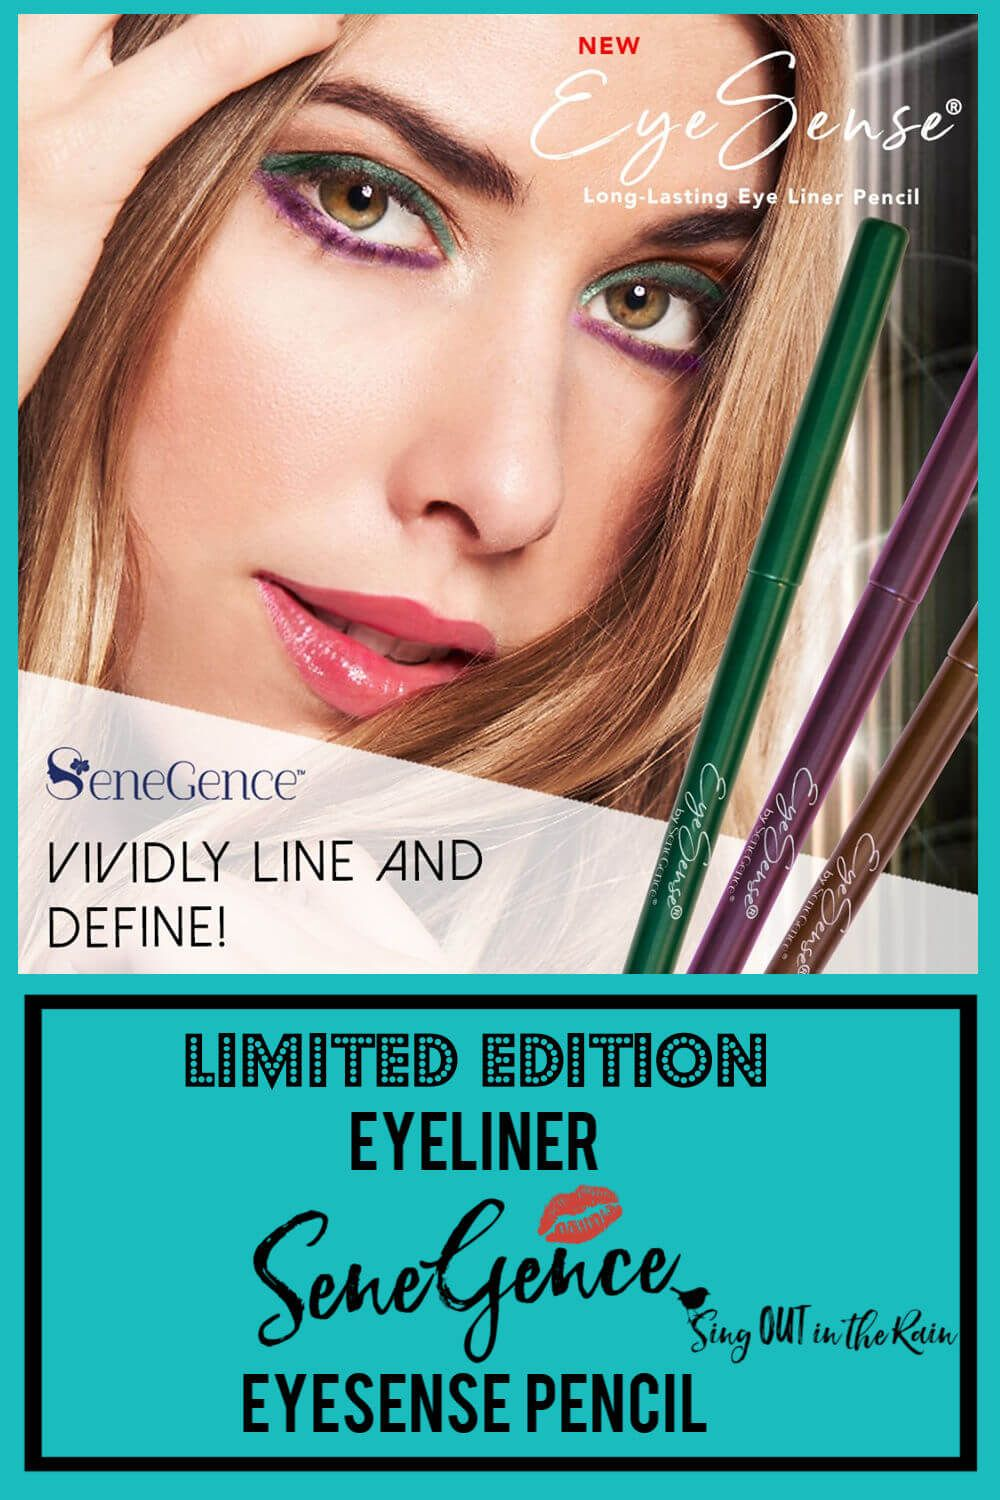 SeneGence Eyeliner Pencil Limited Edition Colors SeneGence has three Limited Edition Eyeliner Penci